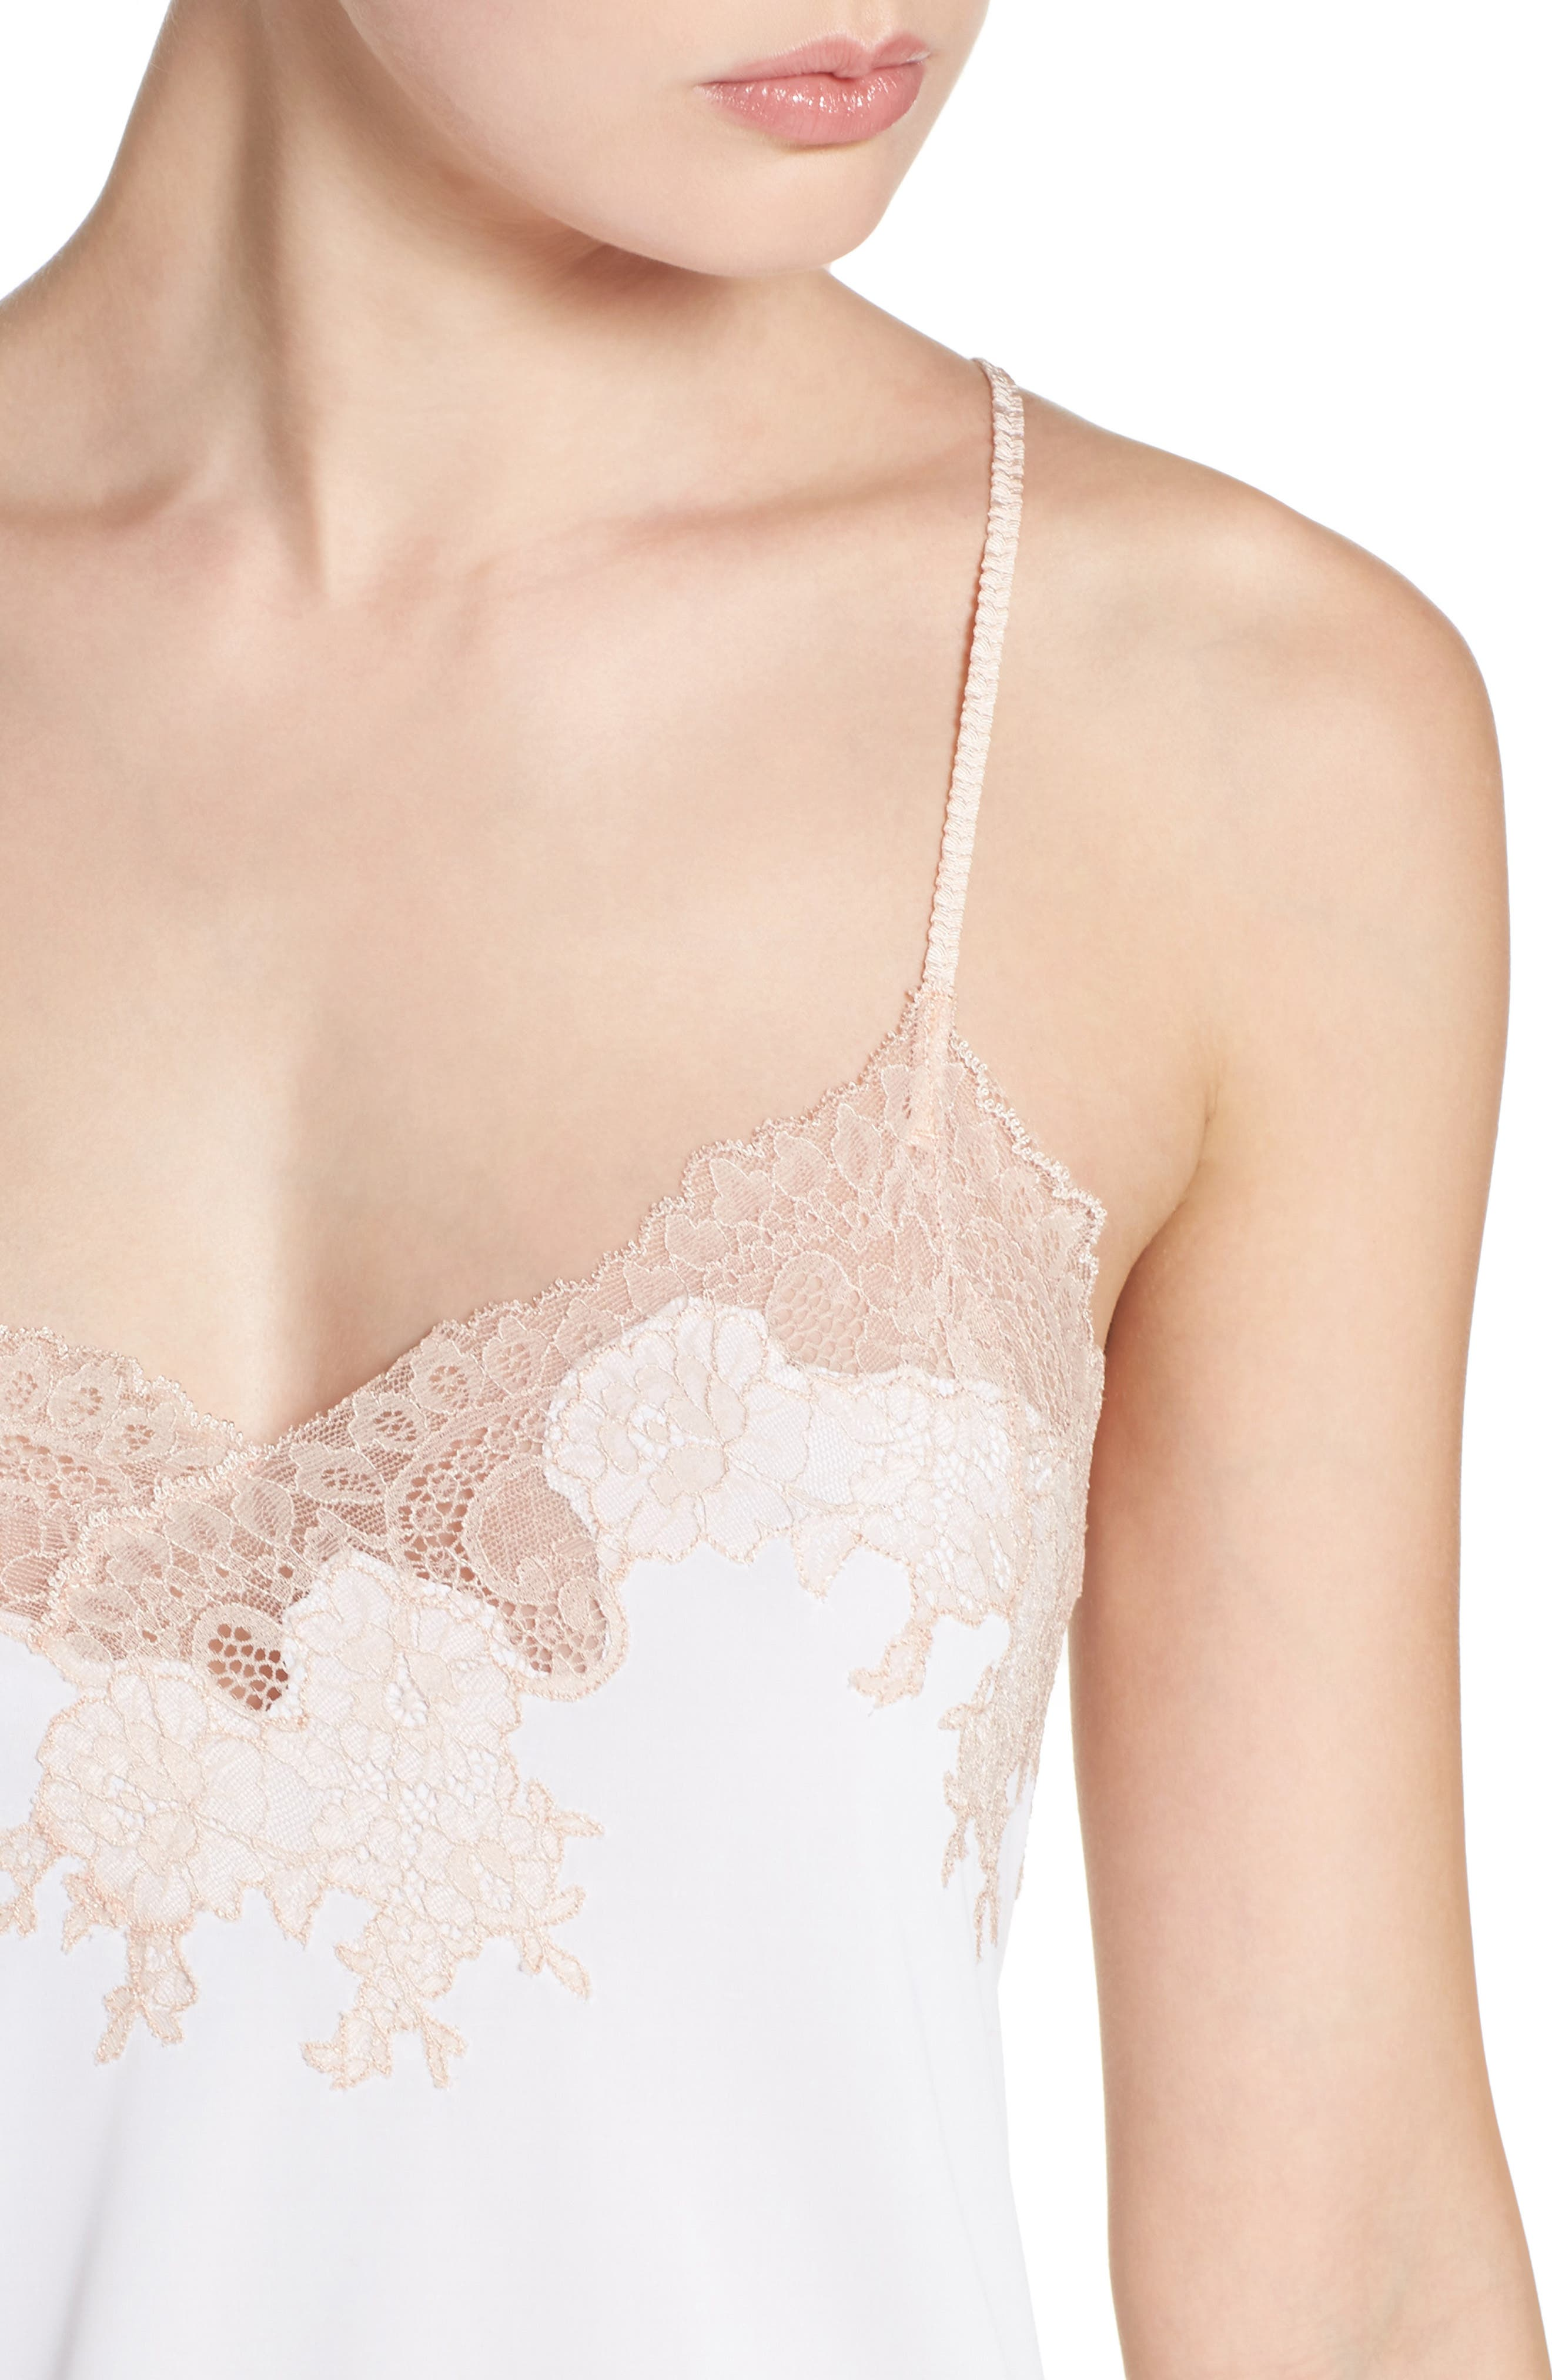 Enchant Chemise,                             Alternate thumbnail 4, color,                             IVORY/ CAMEO ROSE LACE